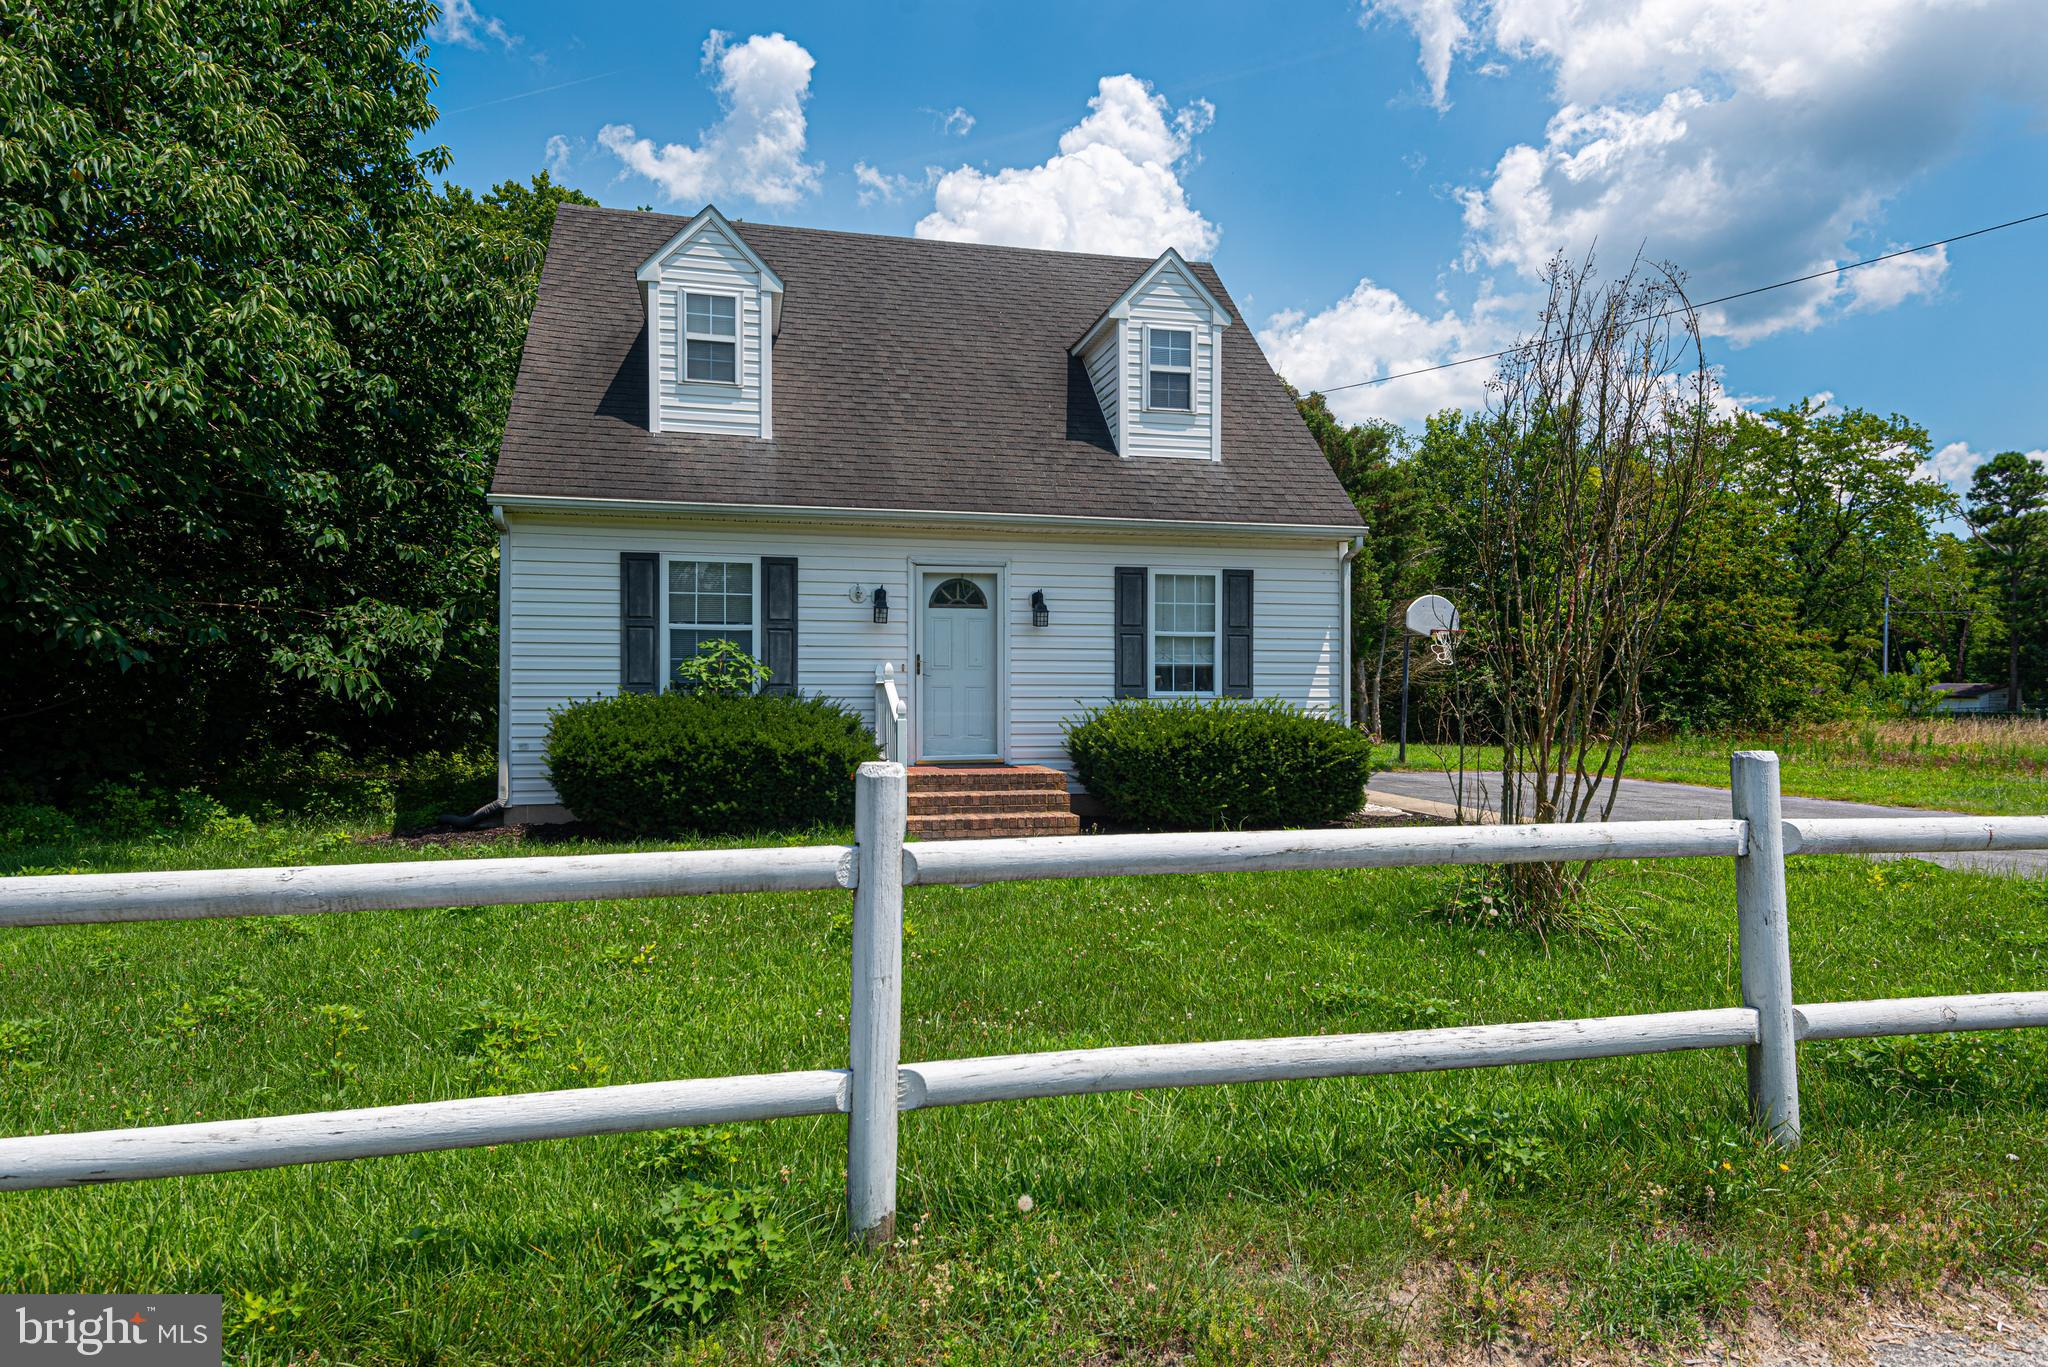 Adorable Cape Cod home close to Salisbury and just 20 minutes to Downtown Berlin and 25 minutes to Ocean City Beaches! First floor bedroom and bath and two more bedrooms upstairs and full bath, black top driveway and rear deck make this the cutest starter or close to the beach home!